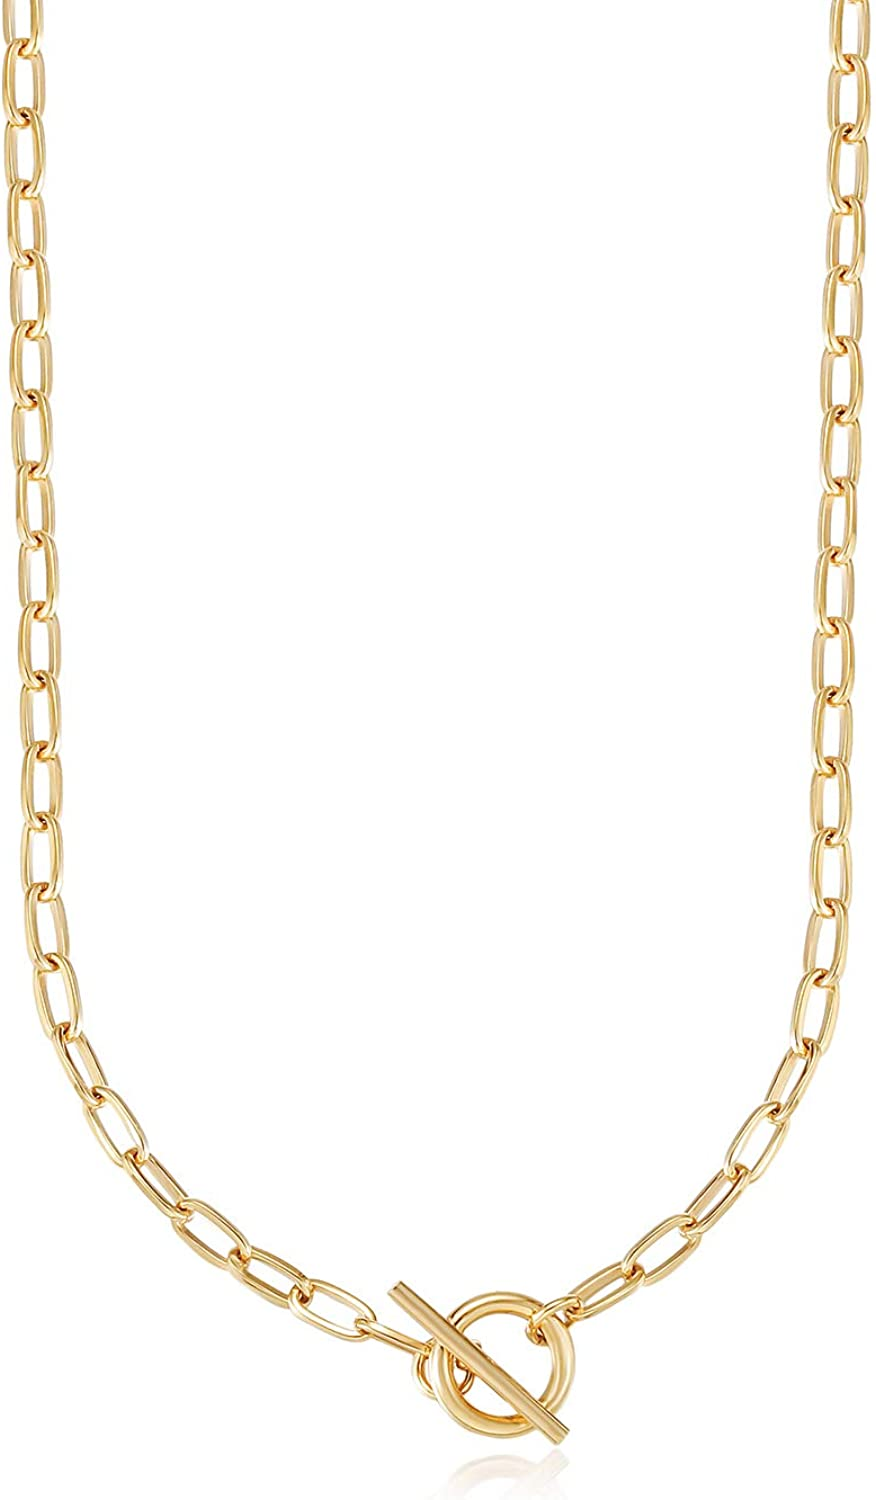 CIUNOFOR Chunky Oval Link Chain Necklace for Women Girls Italian Style Choker Gold Plated Dainty Simple Necklace 16'' 20'' 24''